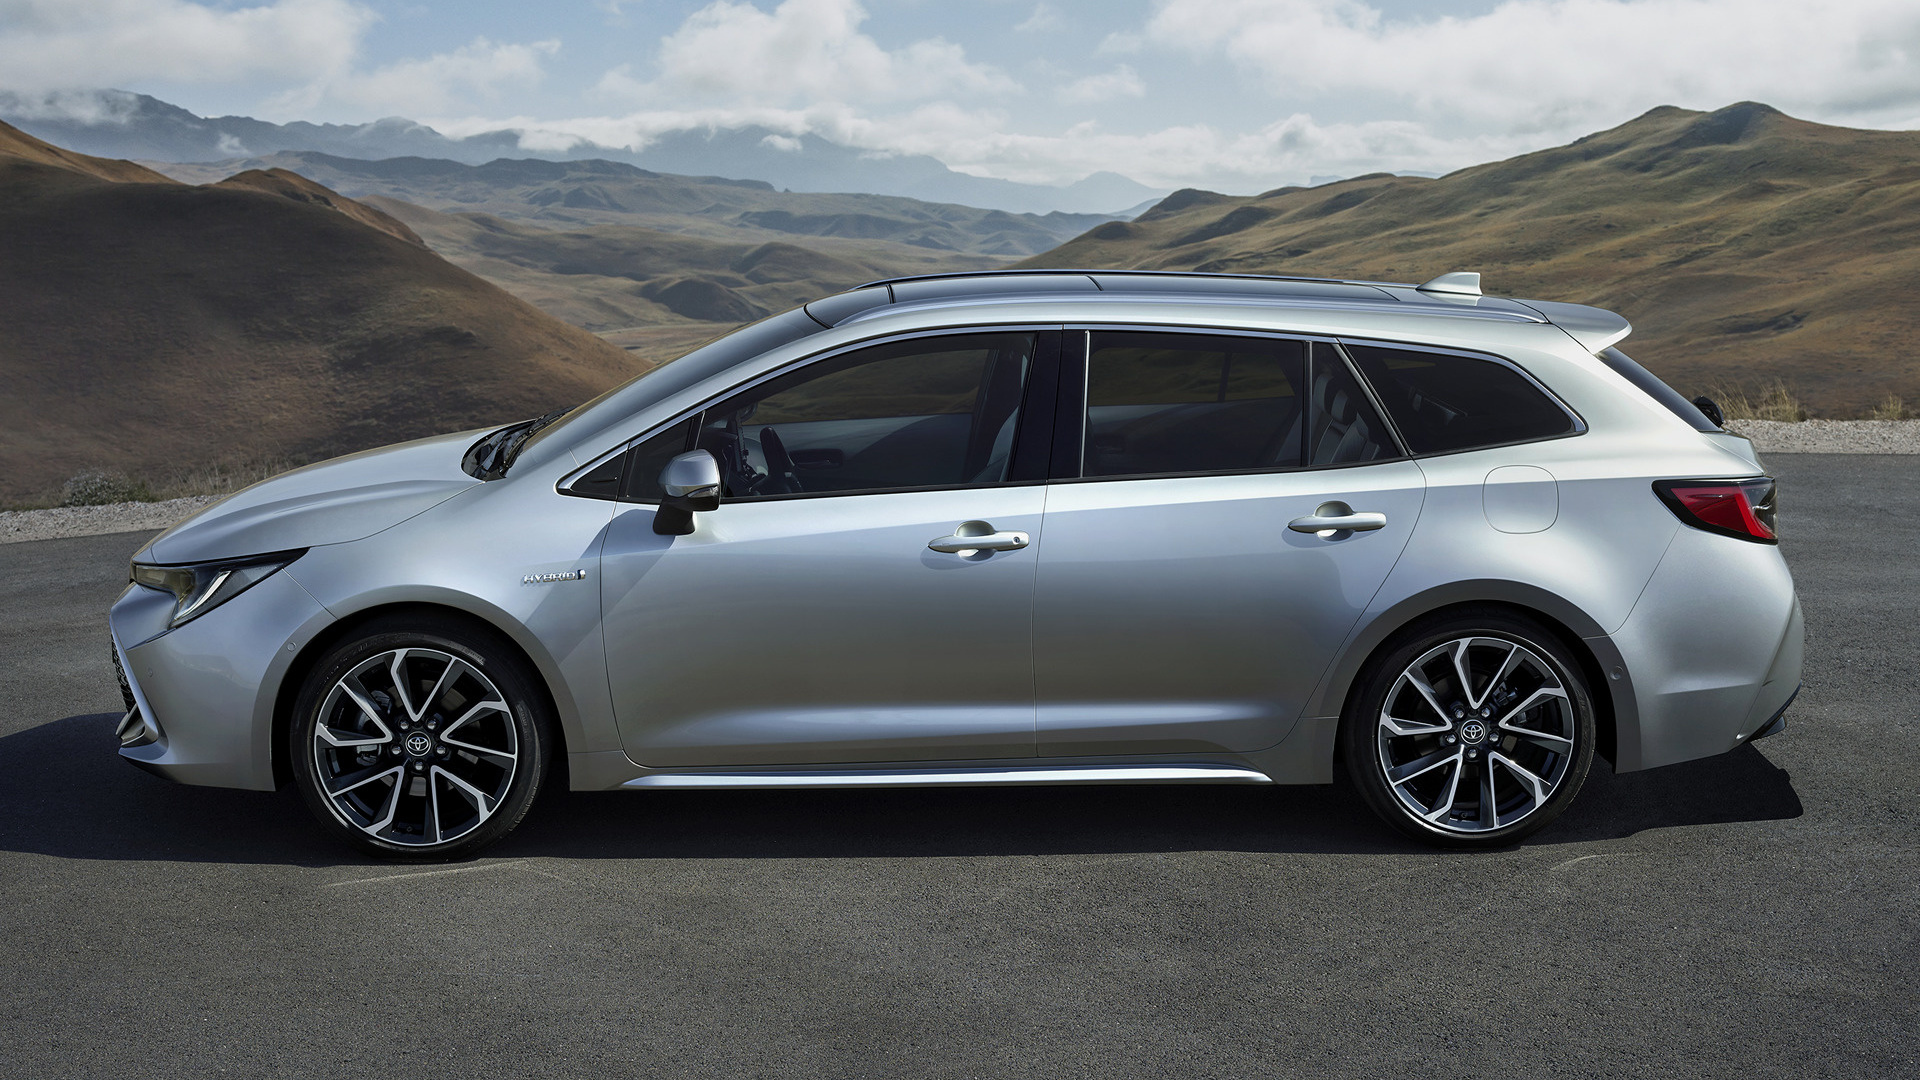 2019 Toyota Corolla Touring Sports Hybrid - Wallpapers and HD Images | Car Pixel